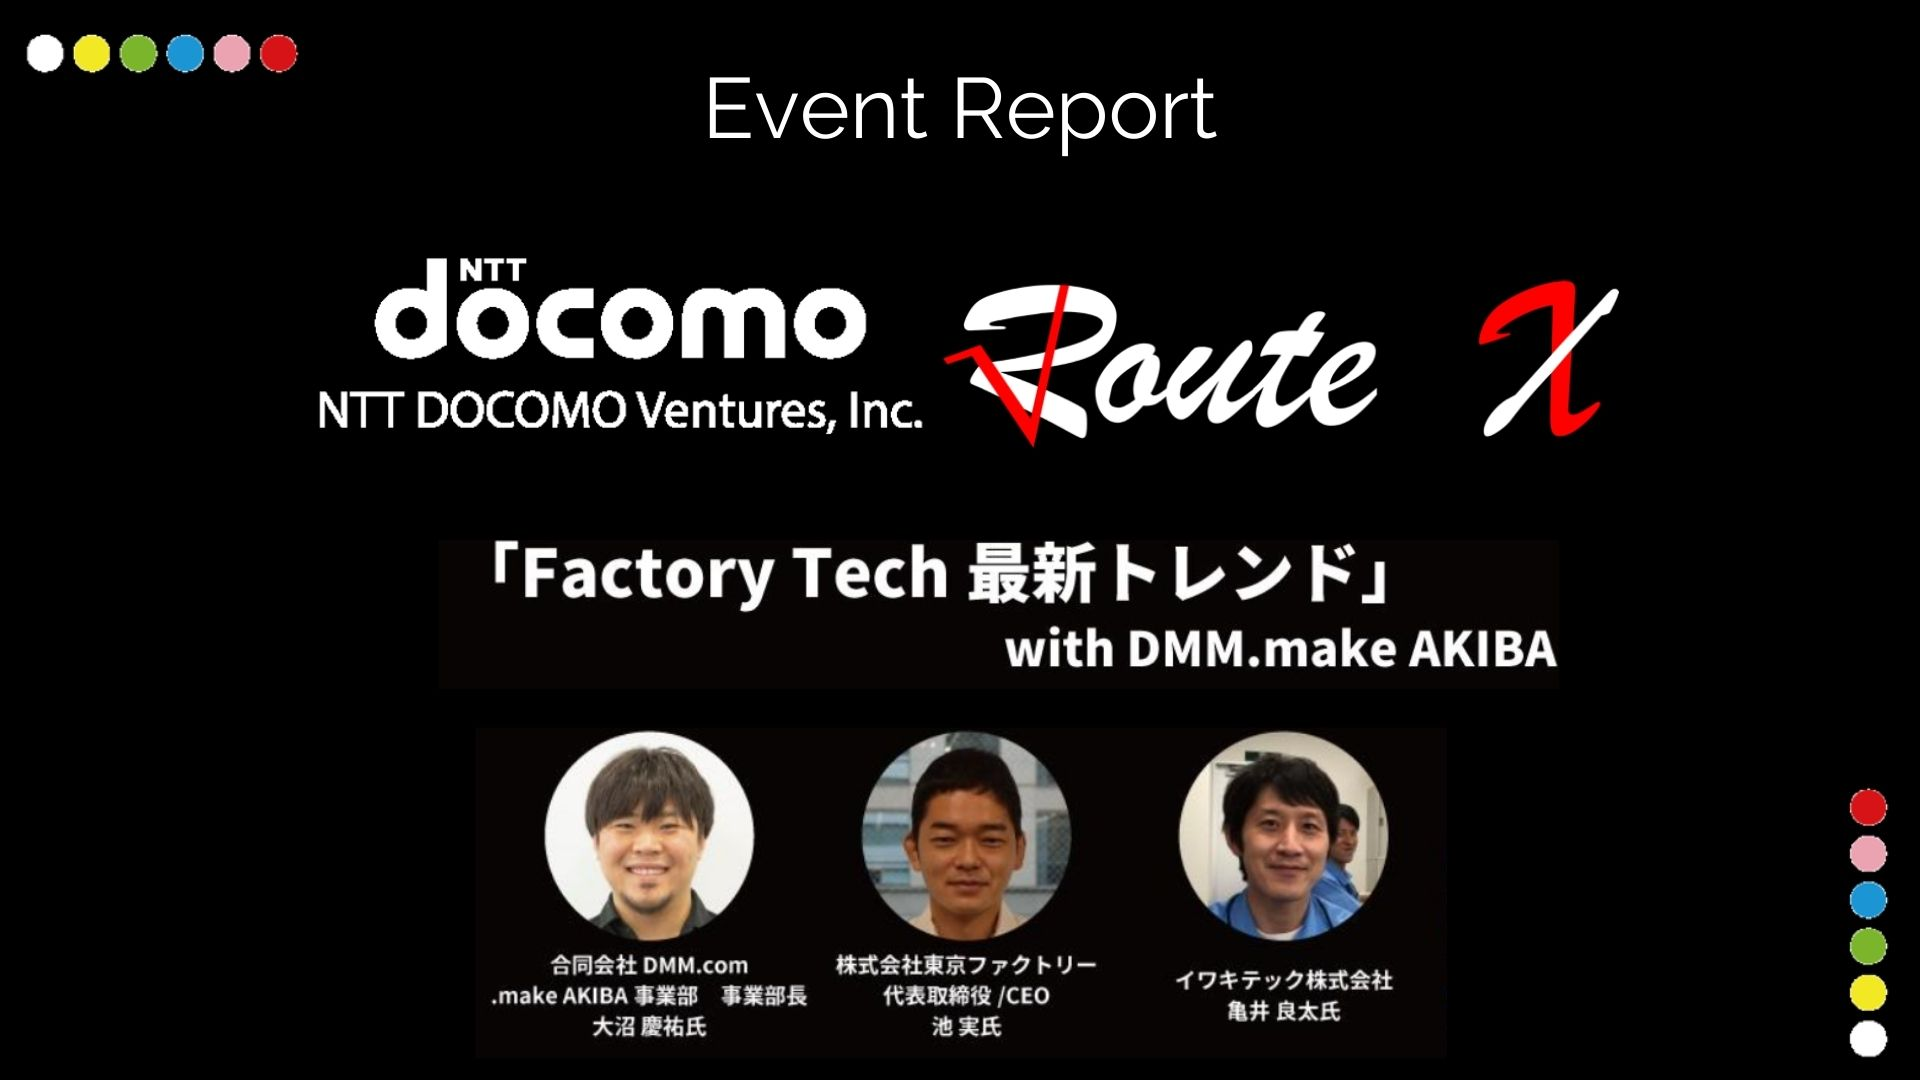 RouteX×NTT DOCOMO Ventures 【Startup Pitch#1】 Factory Tech 最新トレンド with DMM.make AKIBA